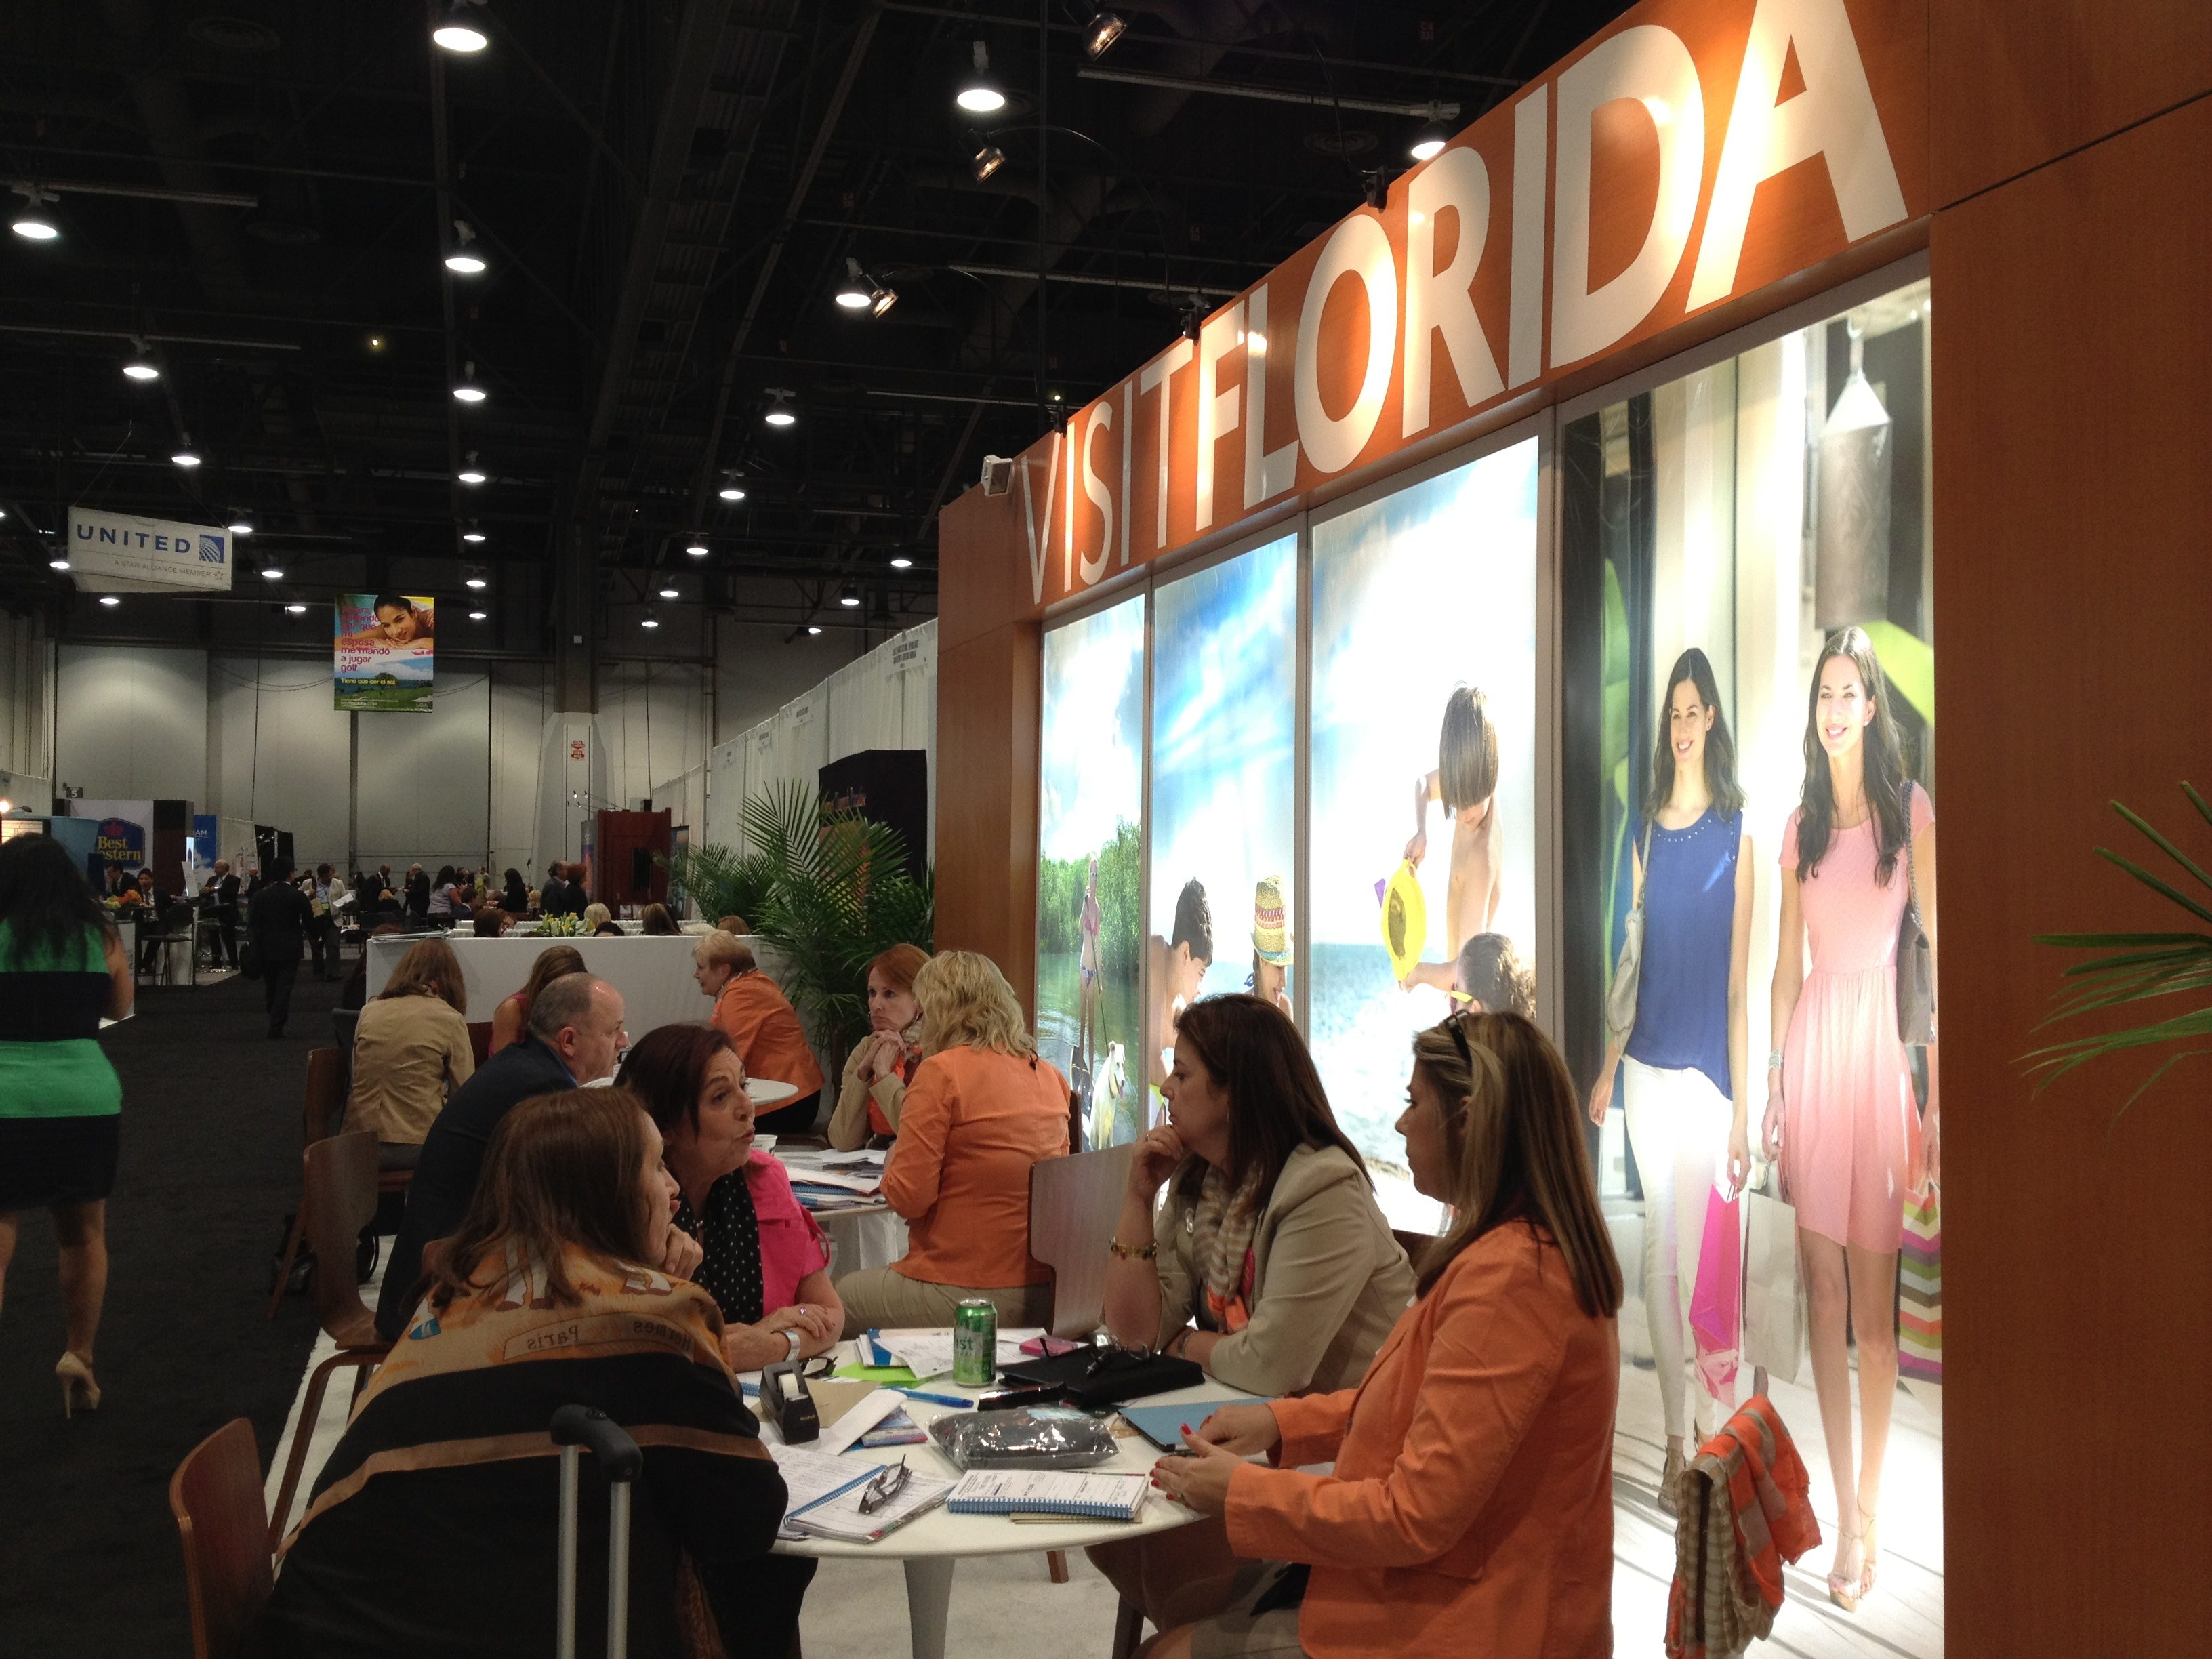 VISIT FLORIDA Enjoys Expanded Presence at 2013 IPW